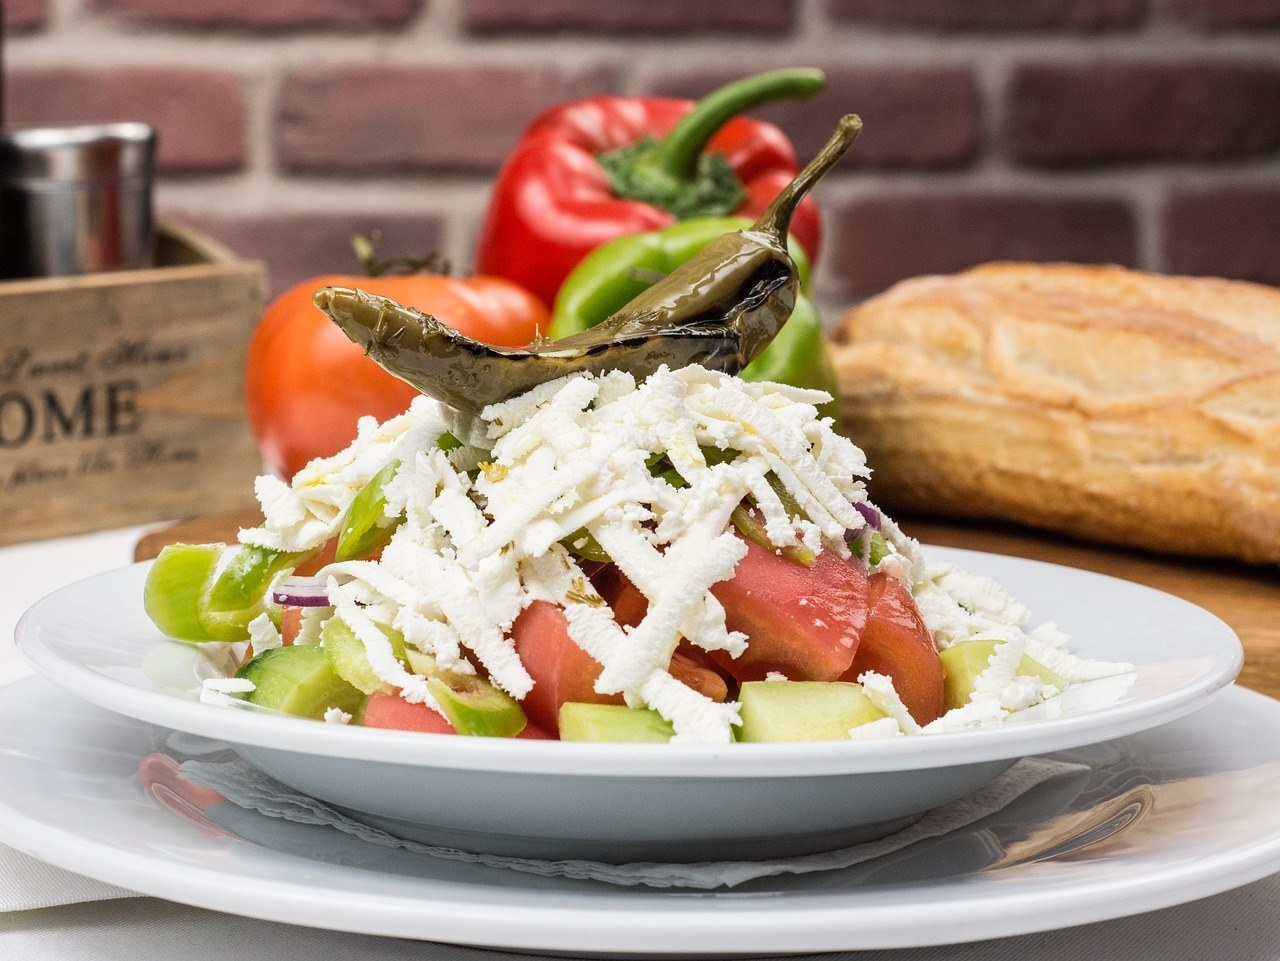 Salad of tomato, cucumber, and shredded cheese